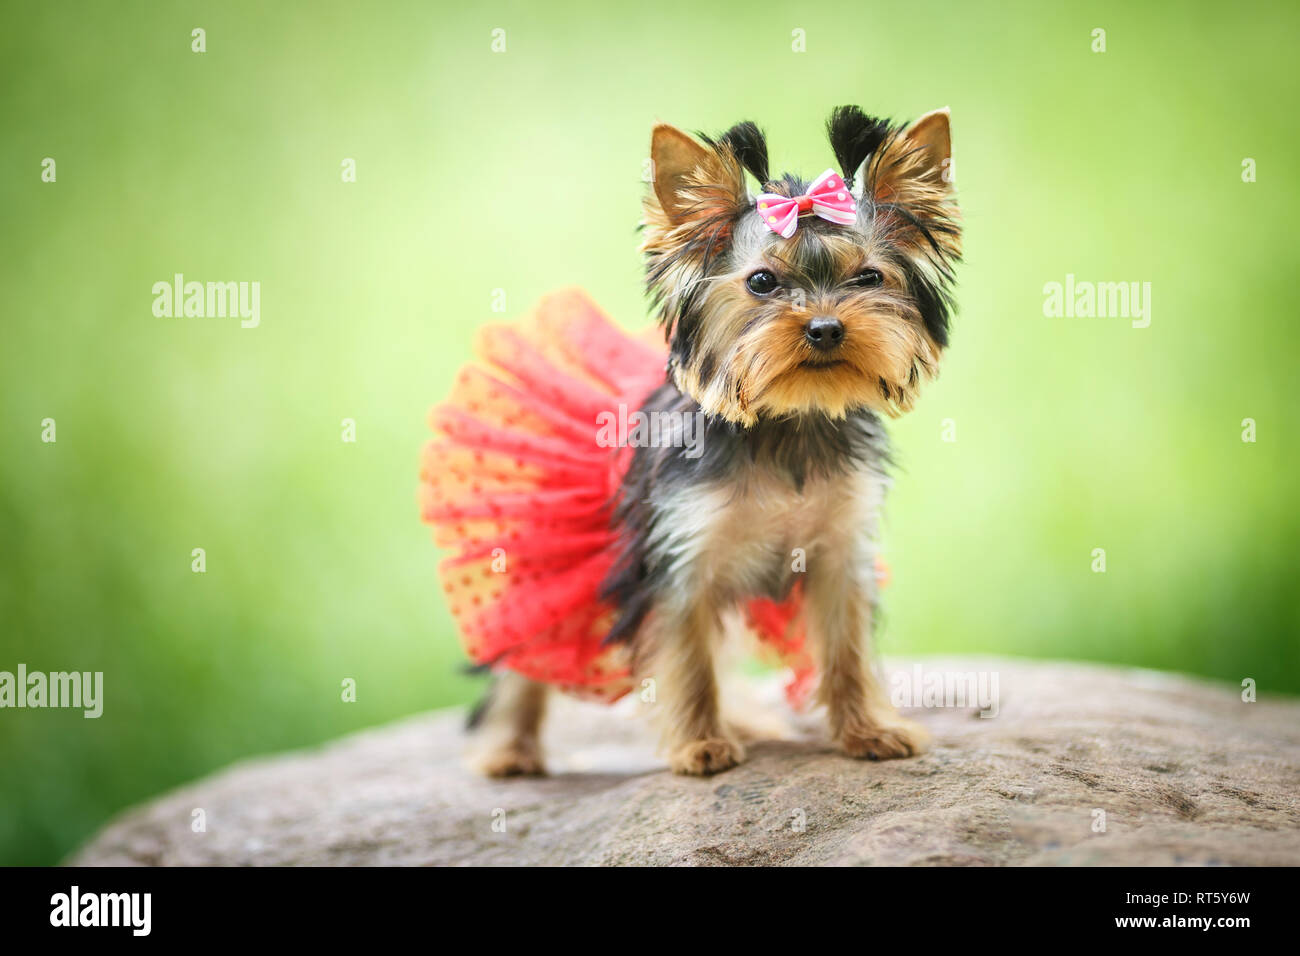 Lovely puppy of female Yorkshire Terrier small dog with red skirt on green blurred background - Stock Image